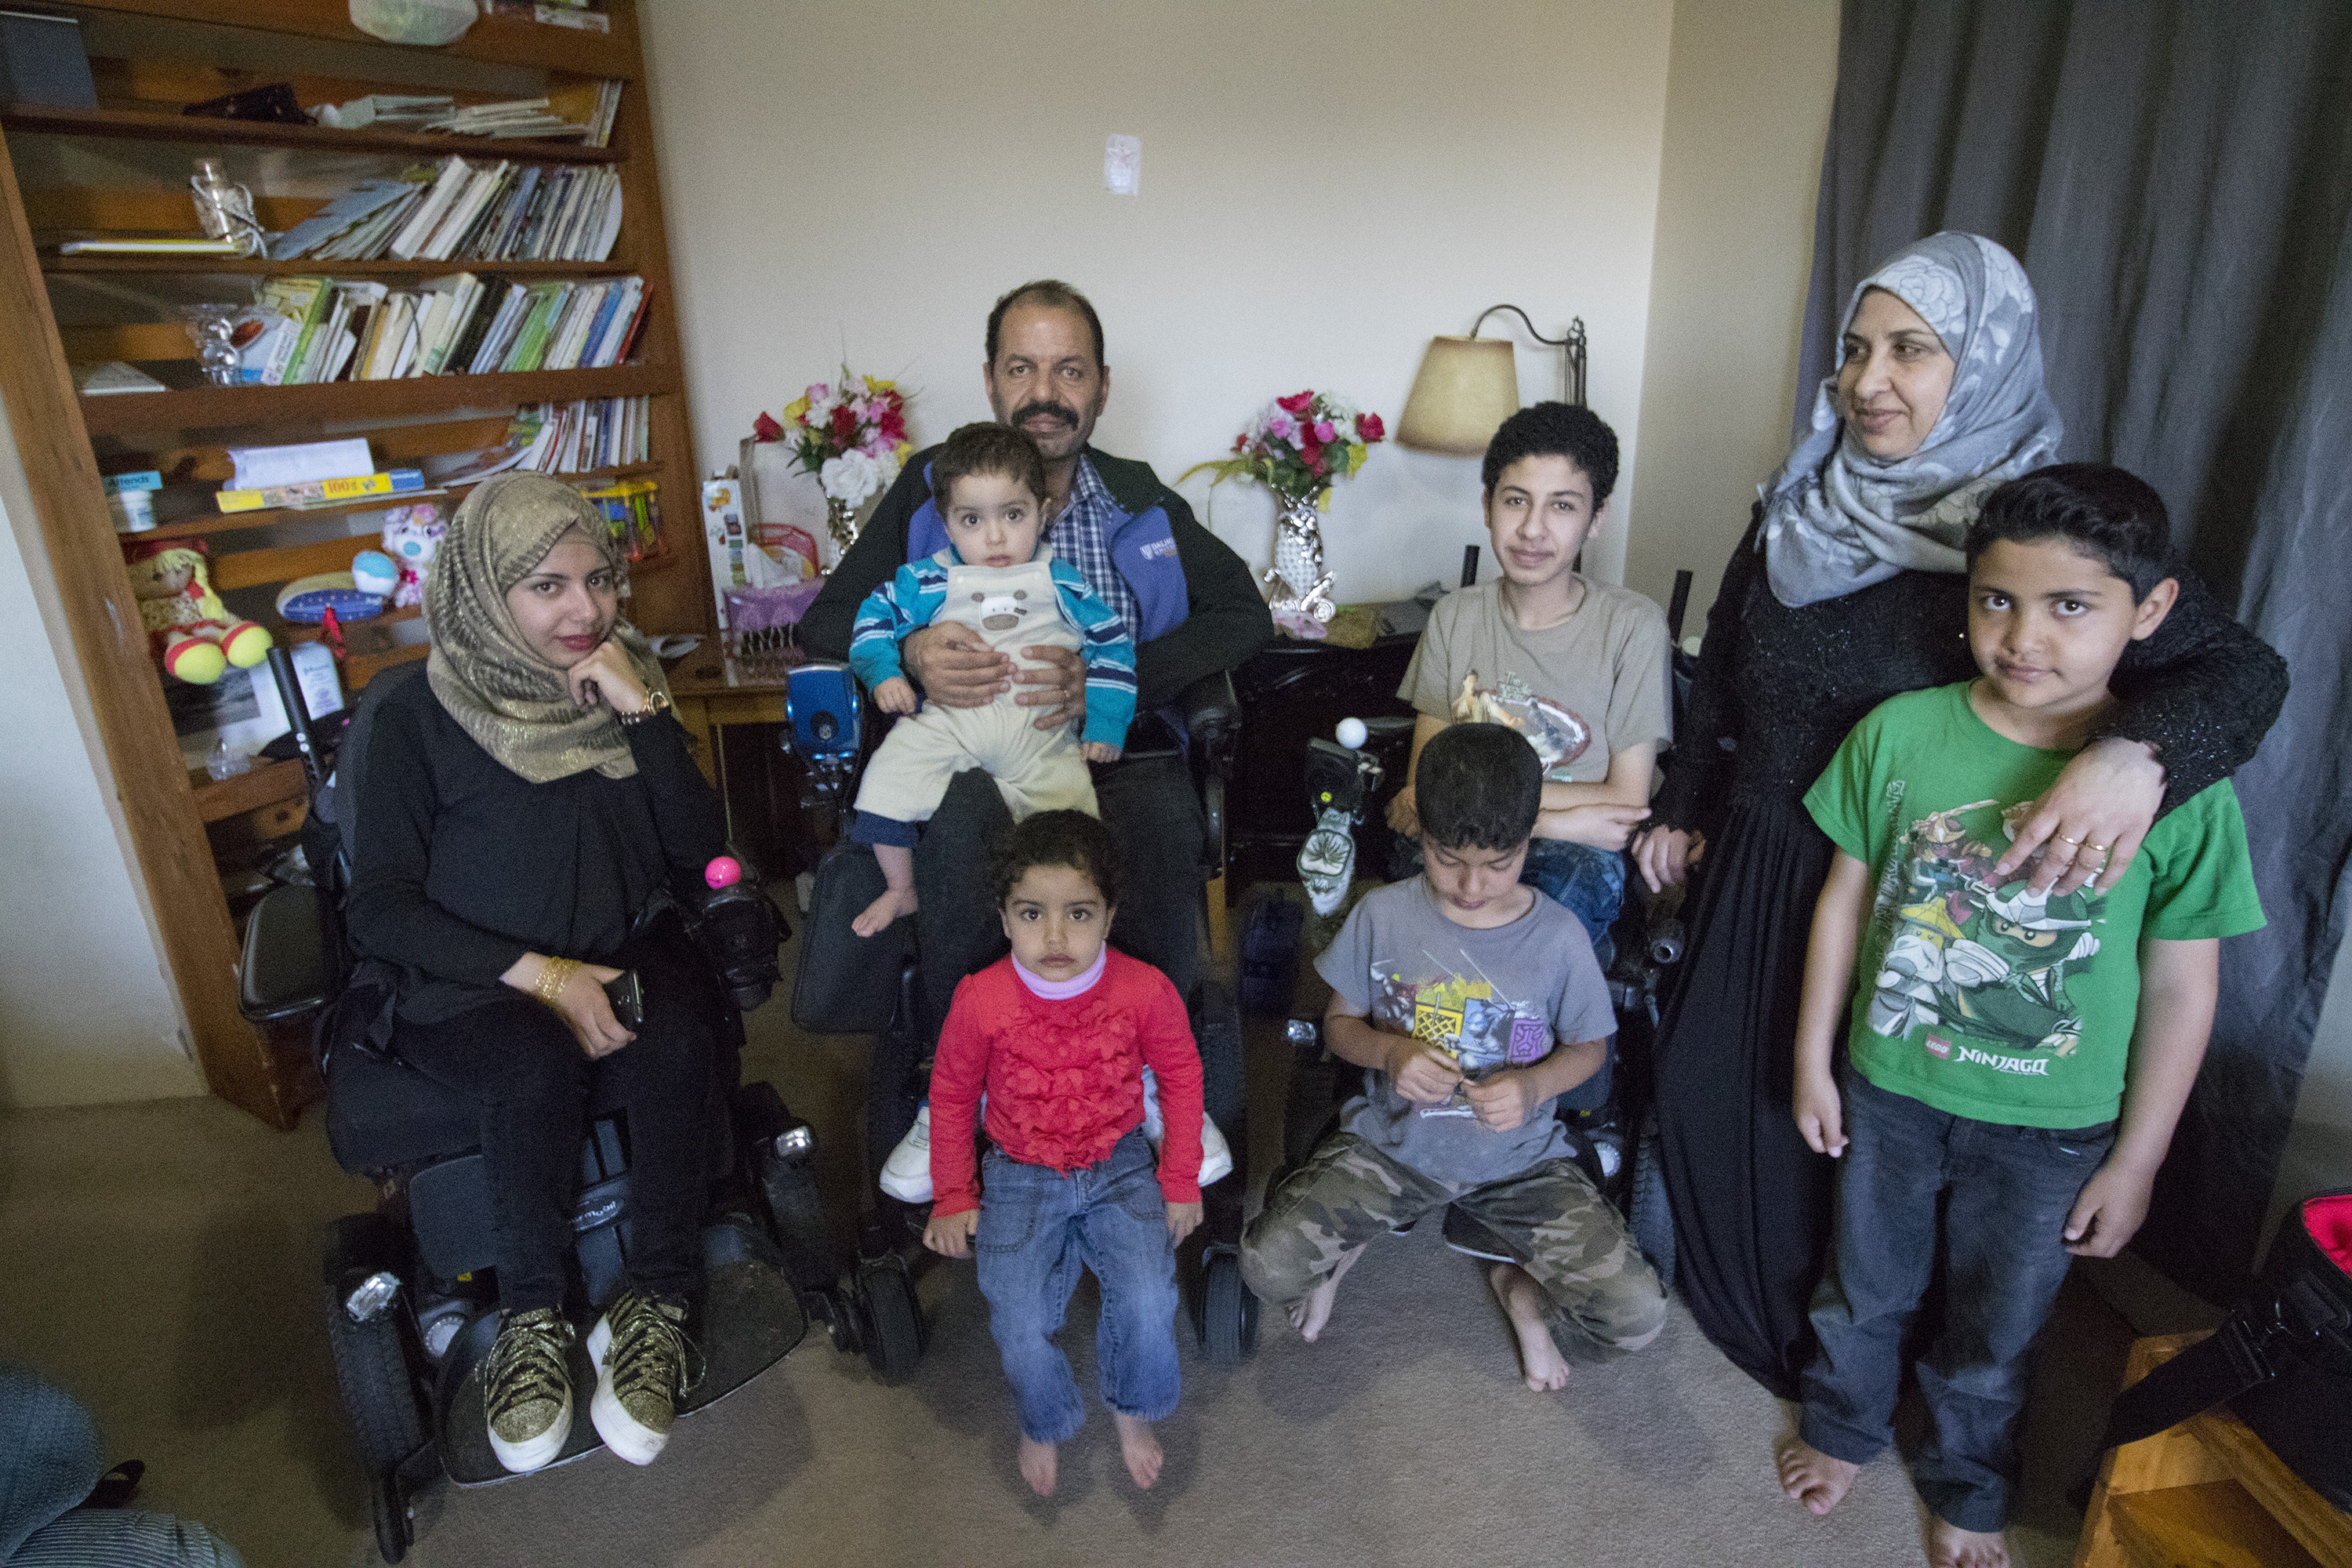 Eight members of the Harb family together in their living room. (Dave Irish/CBC)